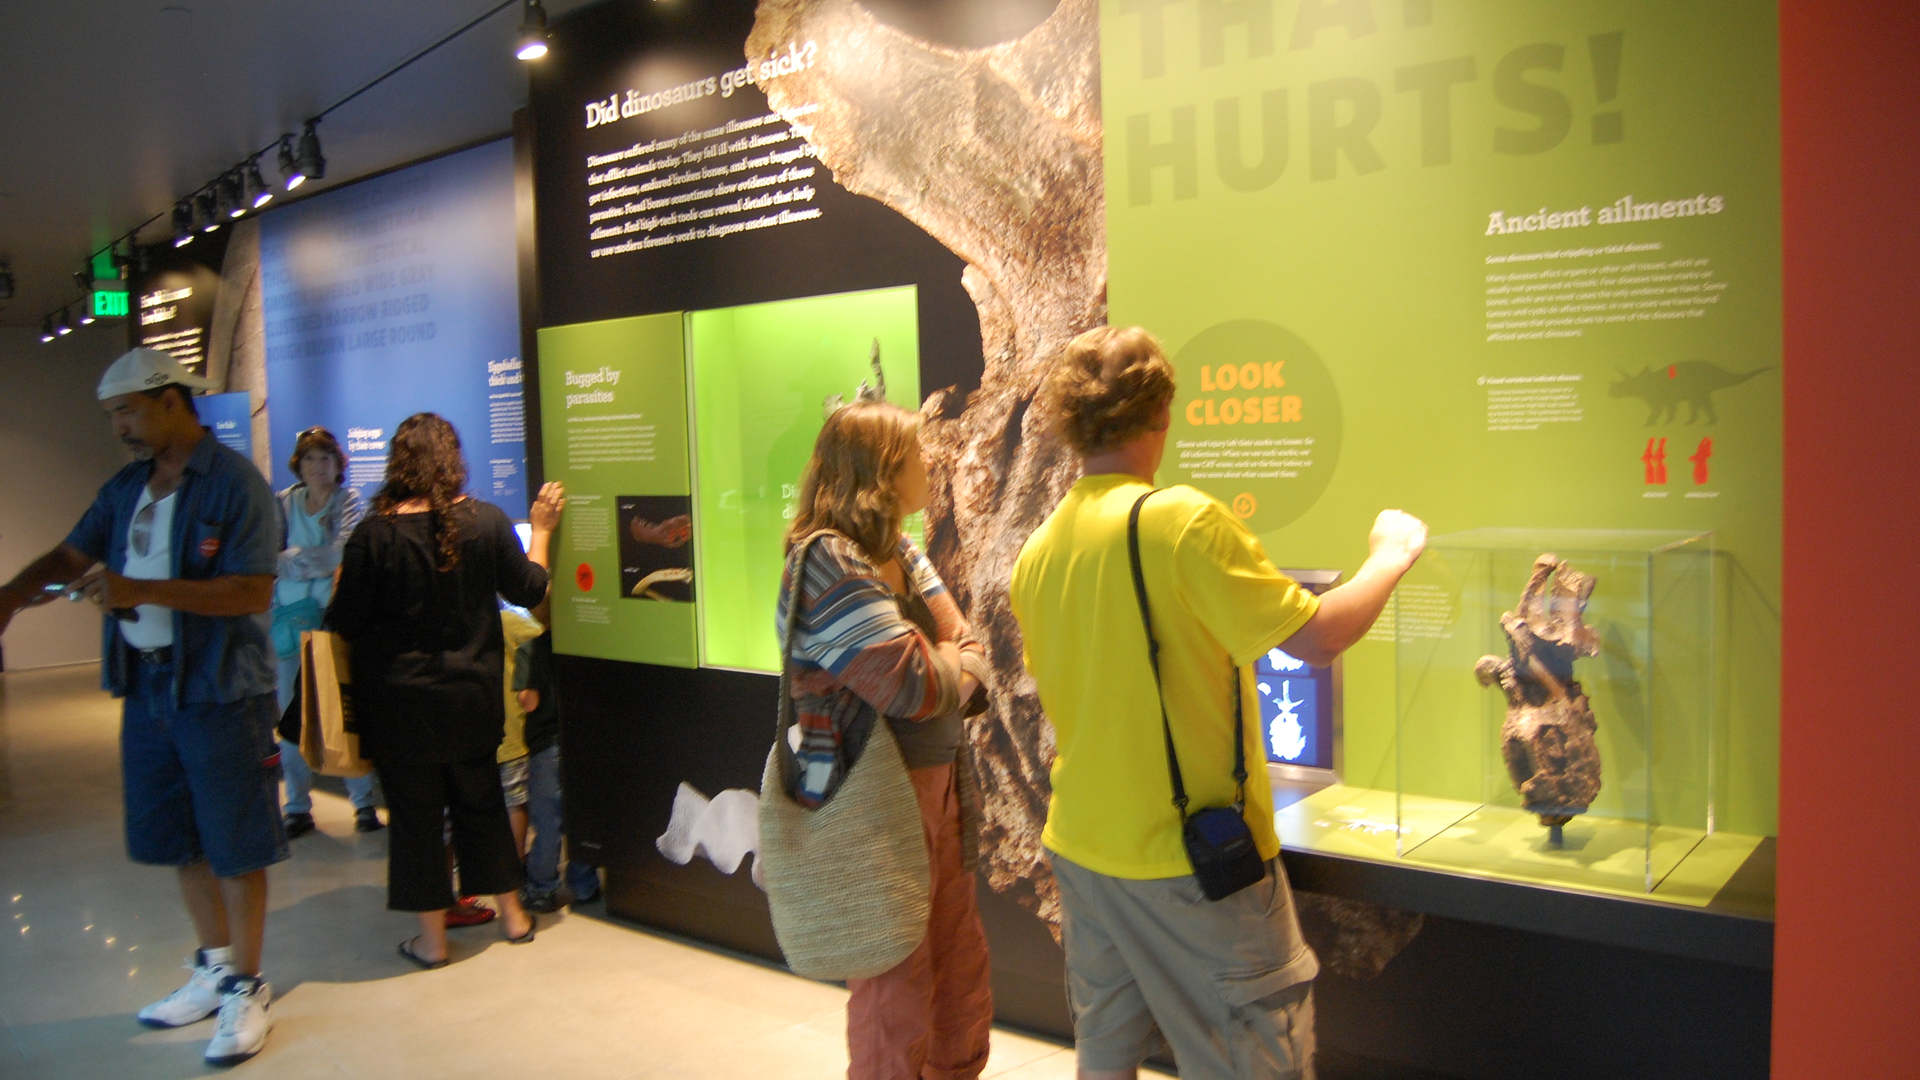 los angeles county museum of natural history featuring the dinosaur hall exhibit with visitors